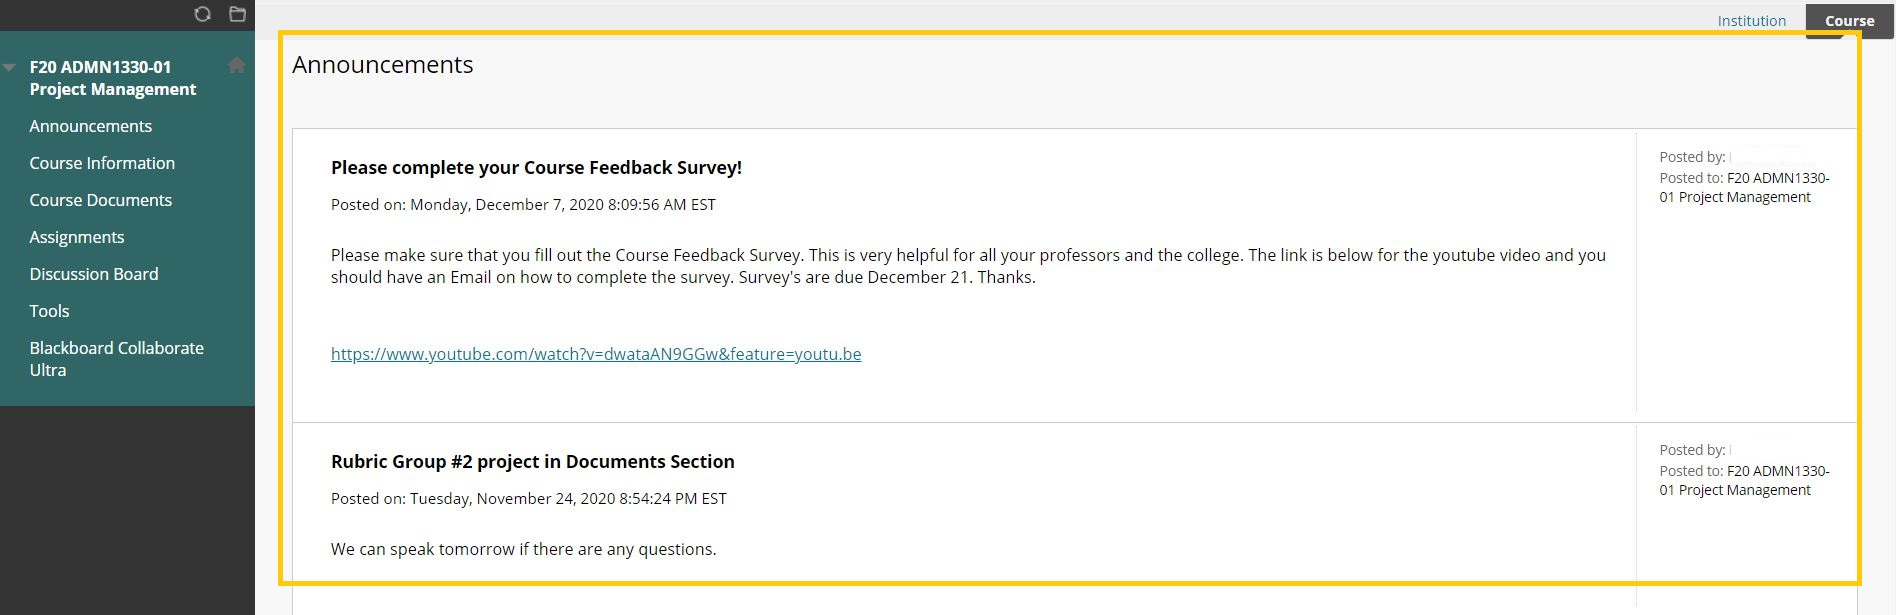 Screenshot of Blackboard Course Announcements page